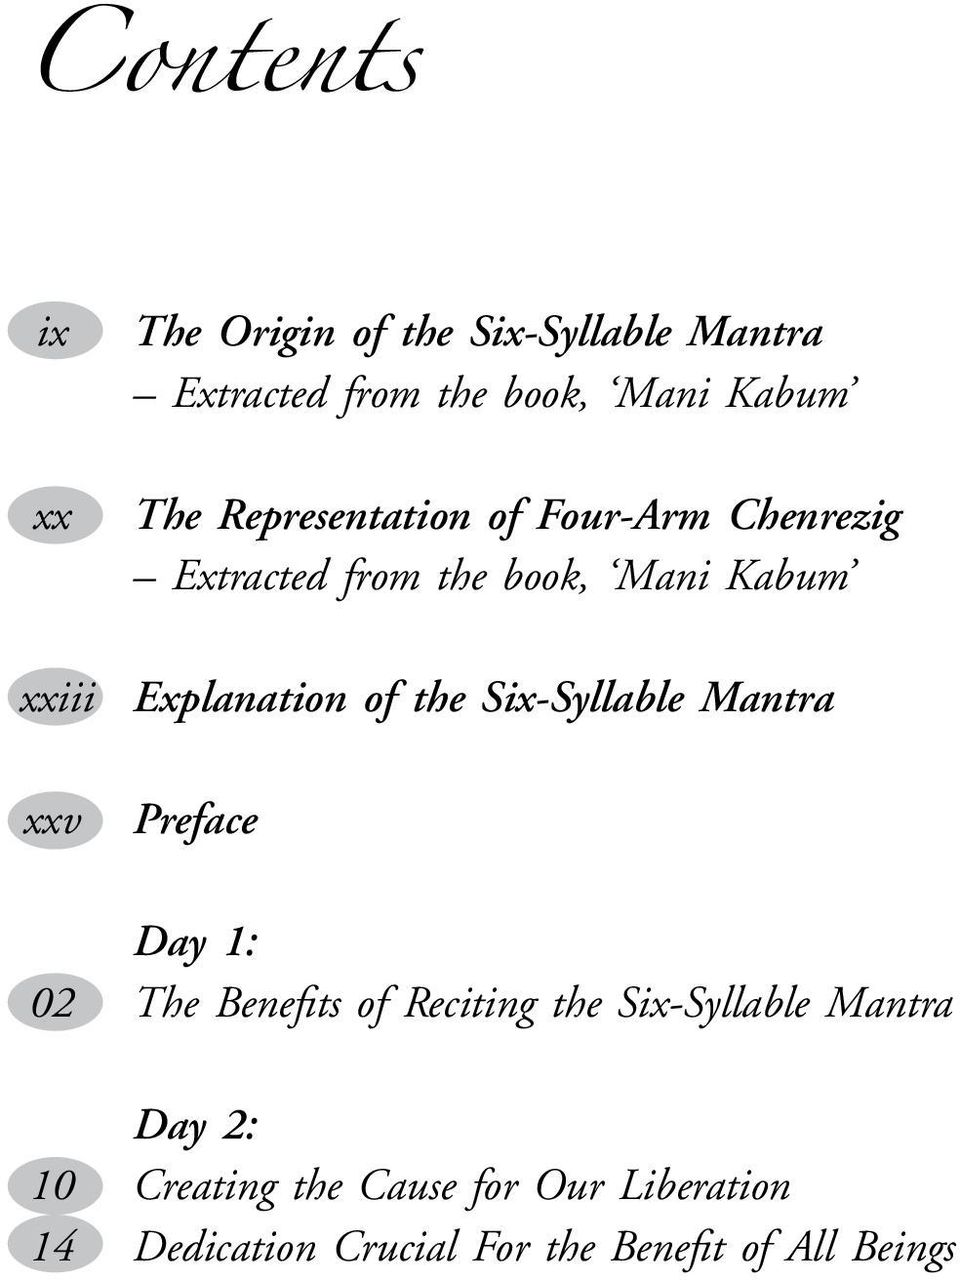 the Six-Syllable Mantra xxv Preface Day 1: 02 The Benefits of Reciting the Six-Syllable Mantra